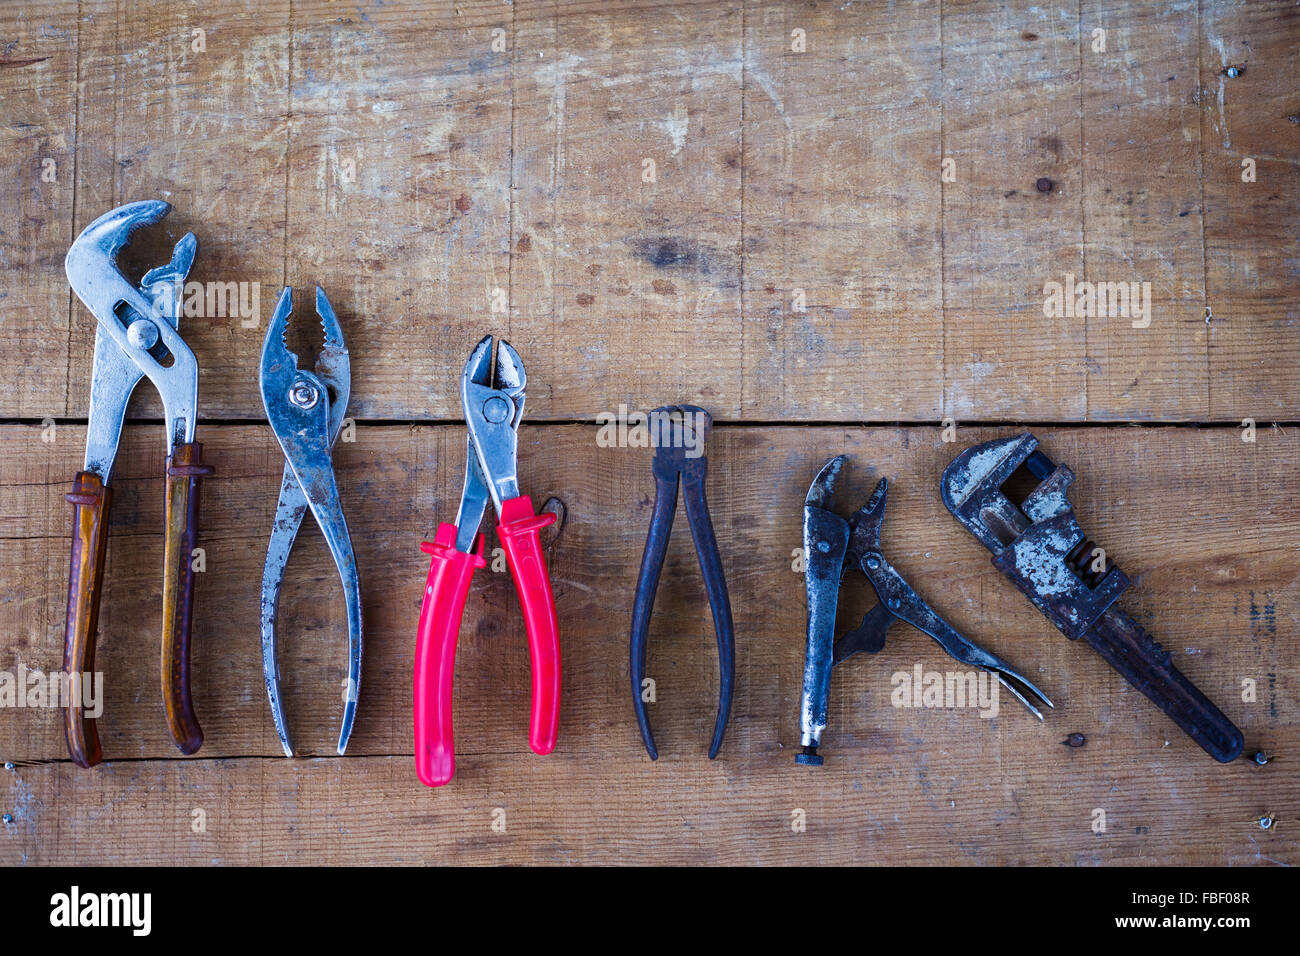 Directly Above Shot Of Various Pliers On Wooden Table - Stock Image